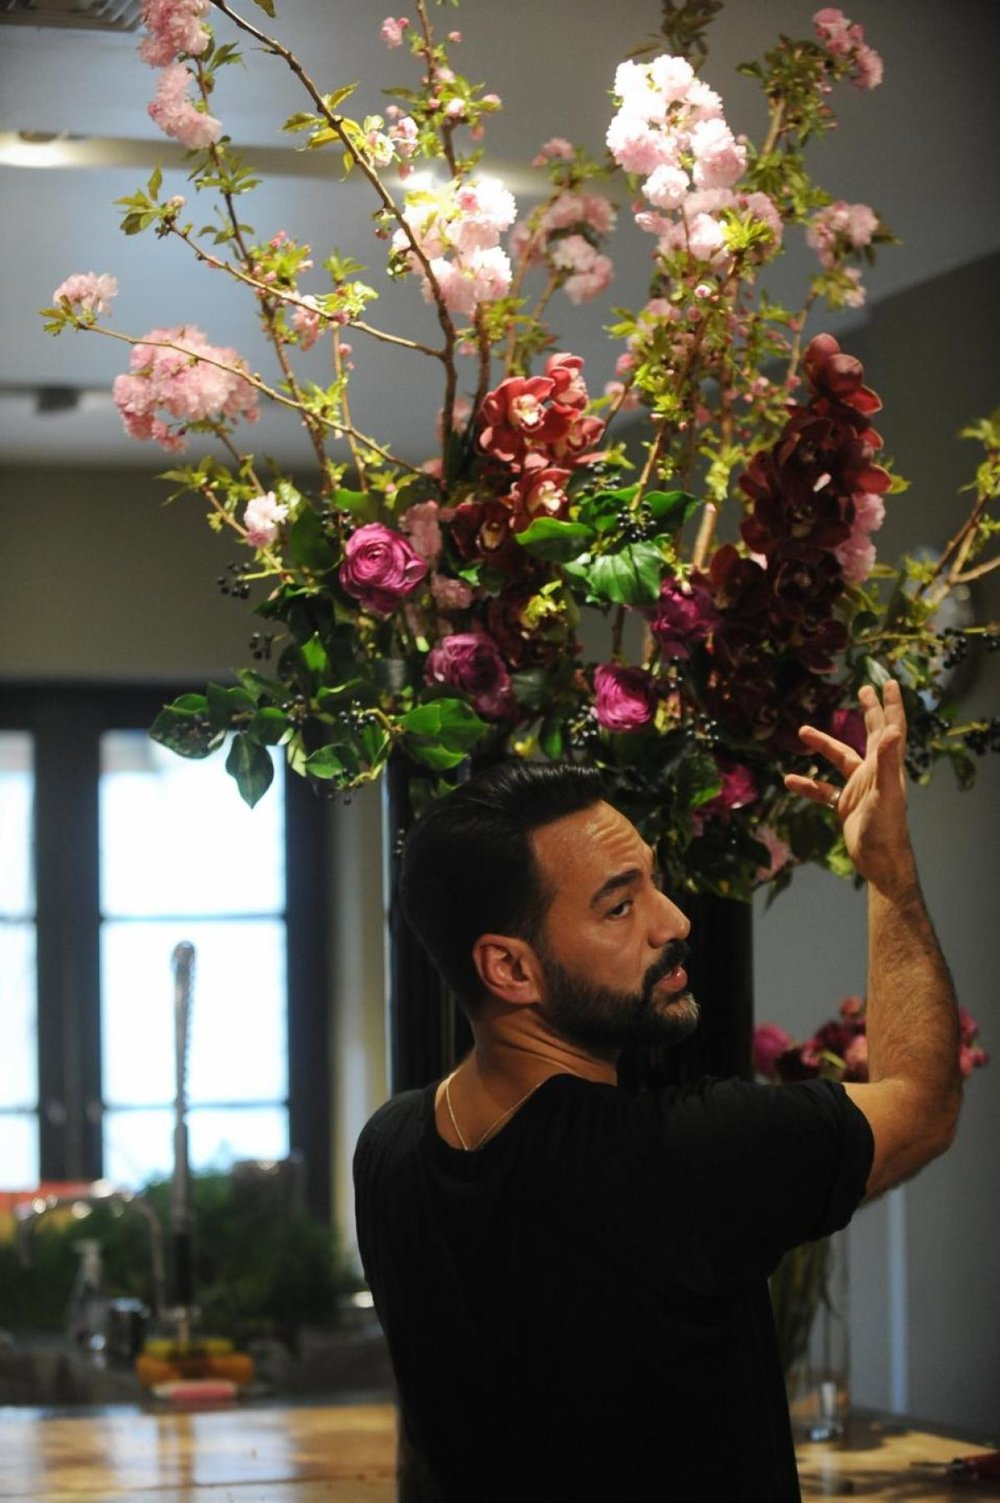 Oscar Mora cautions against getting flowers at the deli, saying they won't last too long.   (ANDREW SAVULICH/NEW YORK DAILY NEWS)